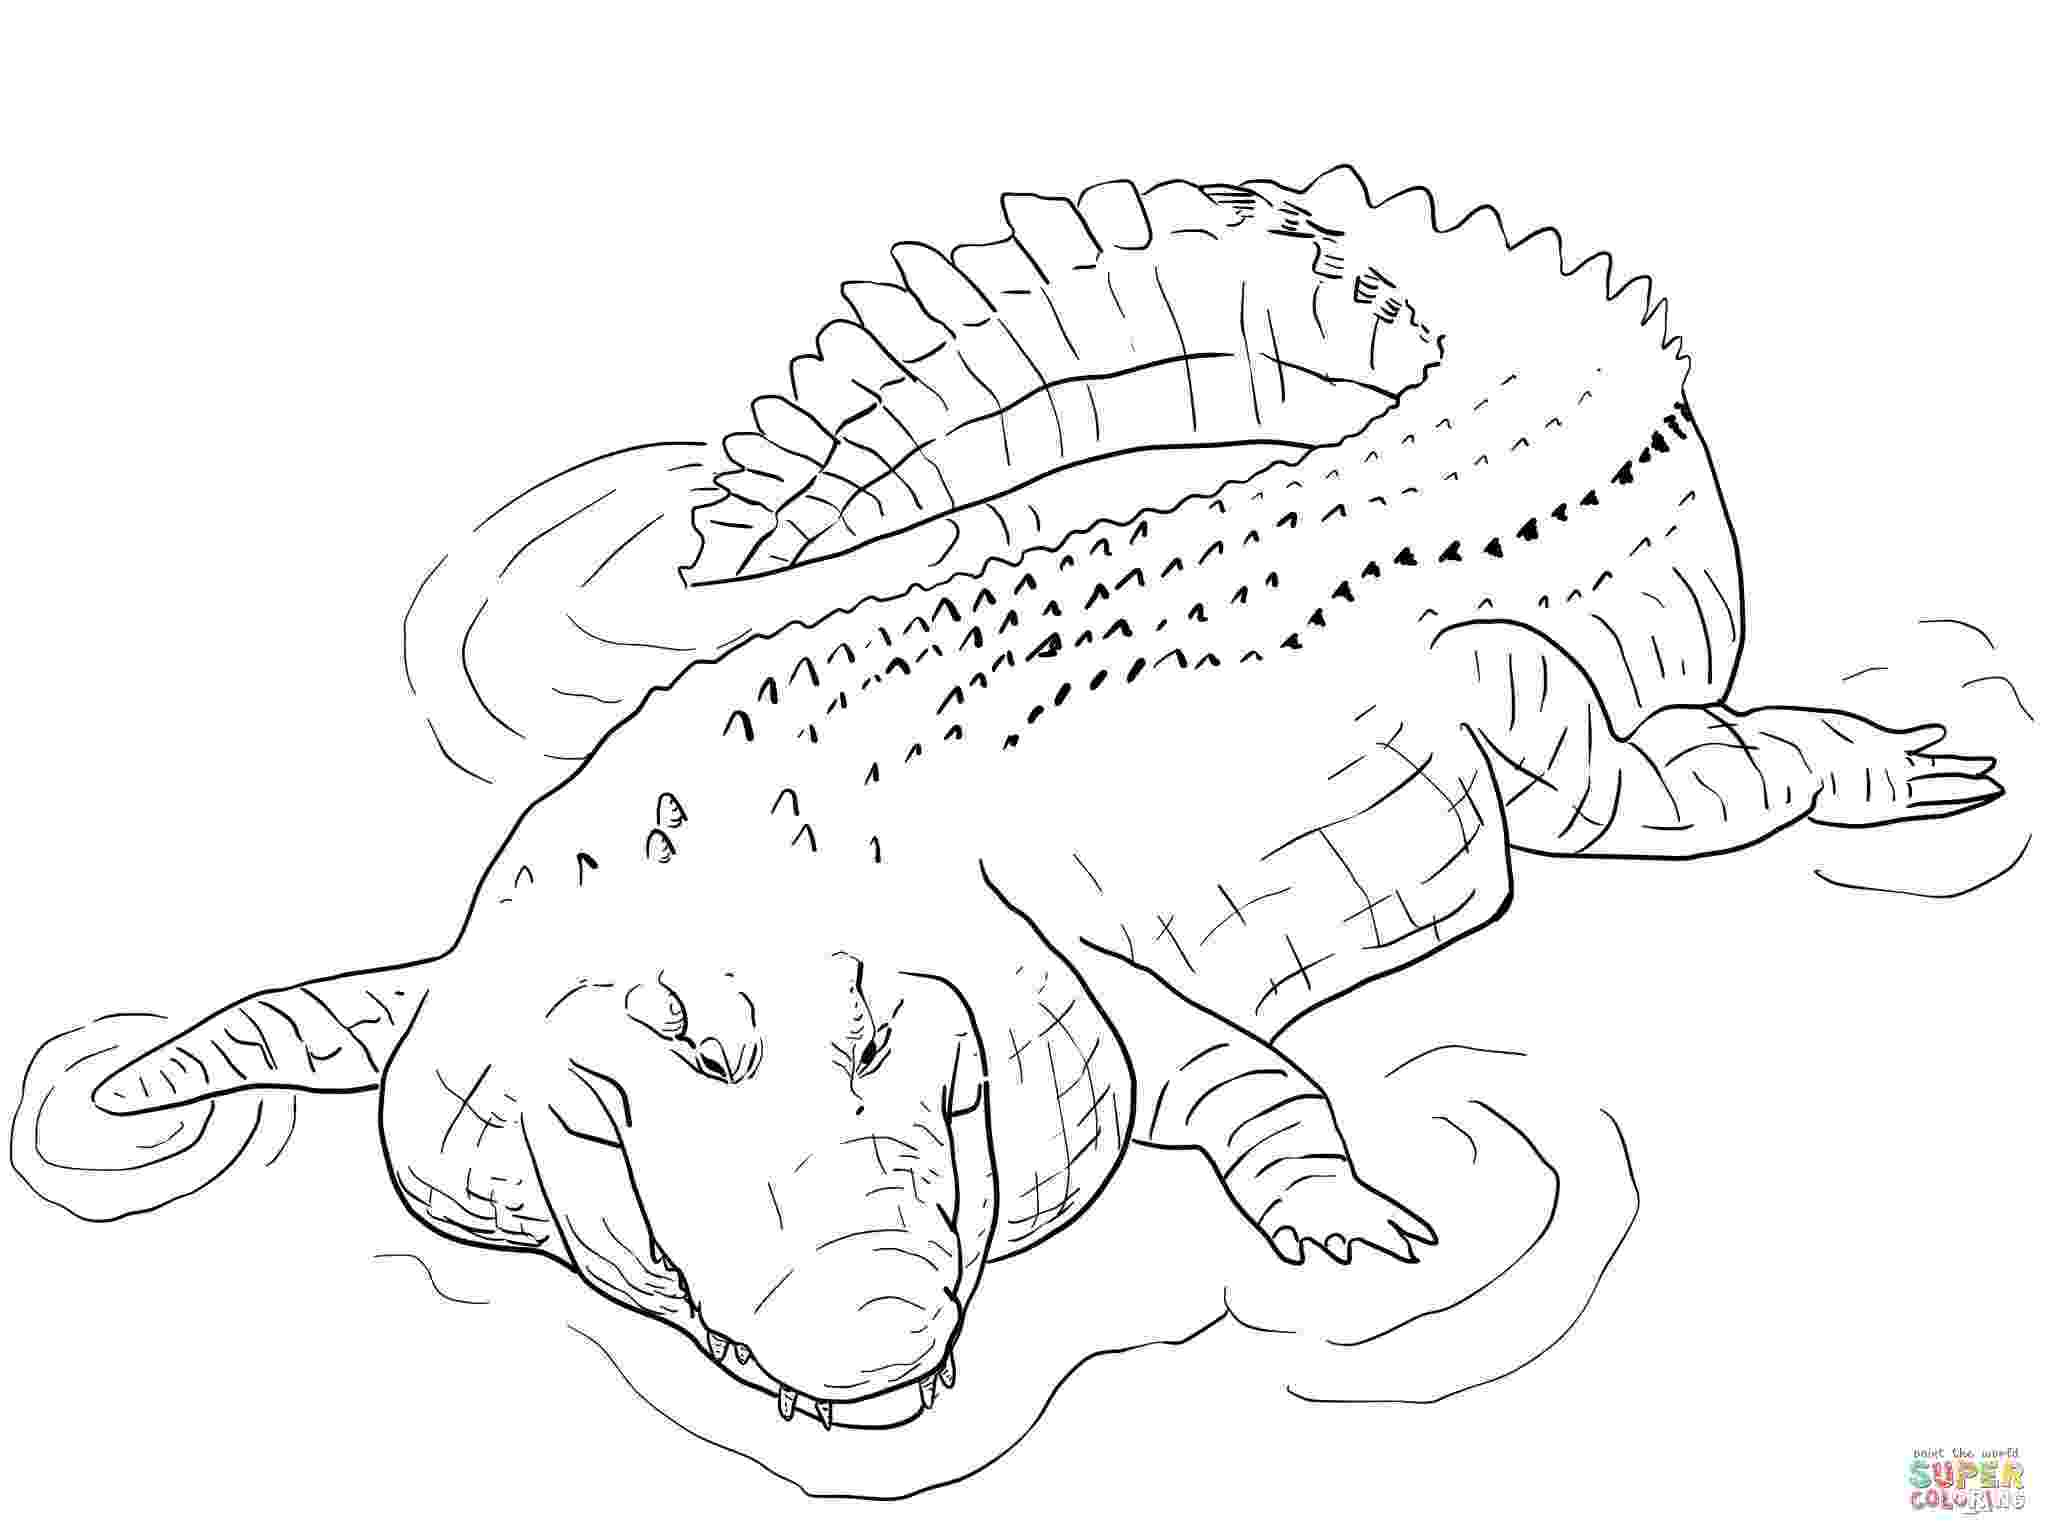 crocodile colouring pictures crocodile free printable templates coloring pages colouring crocodile pictures